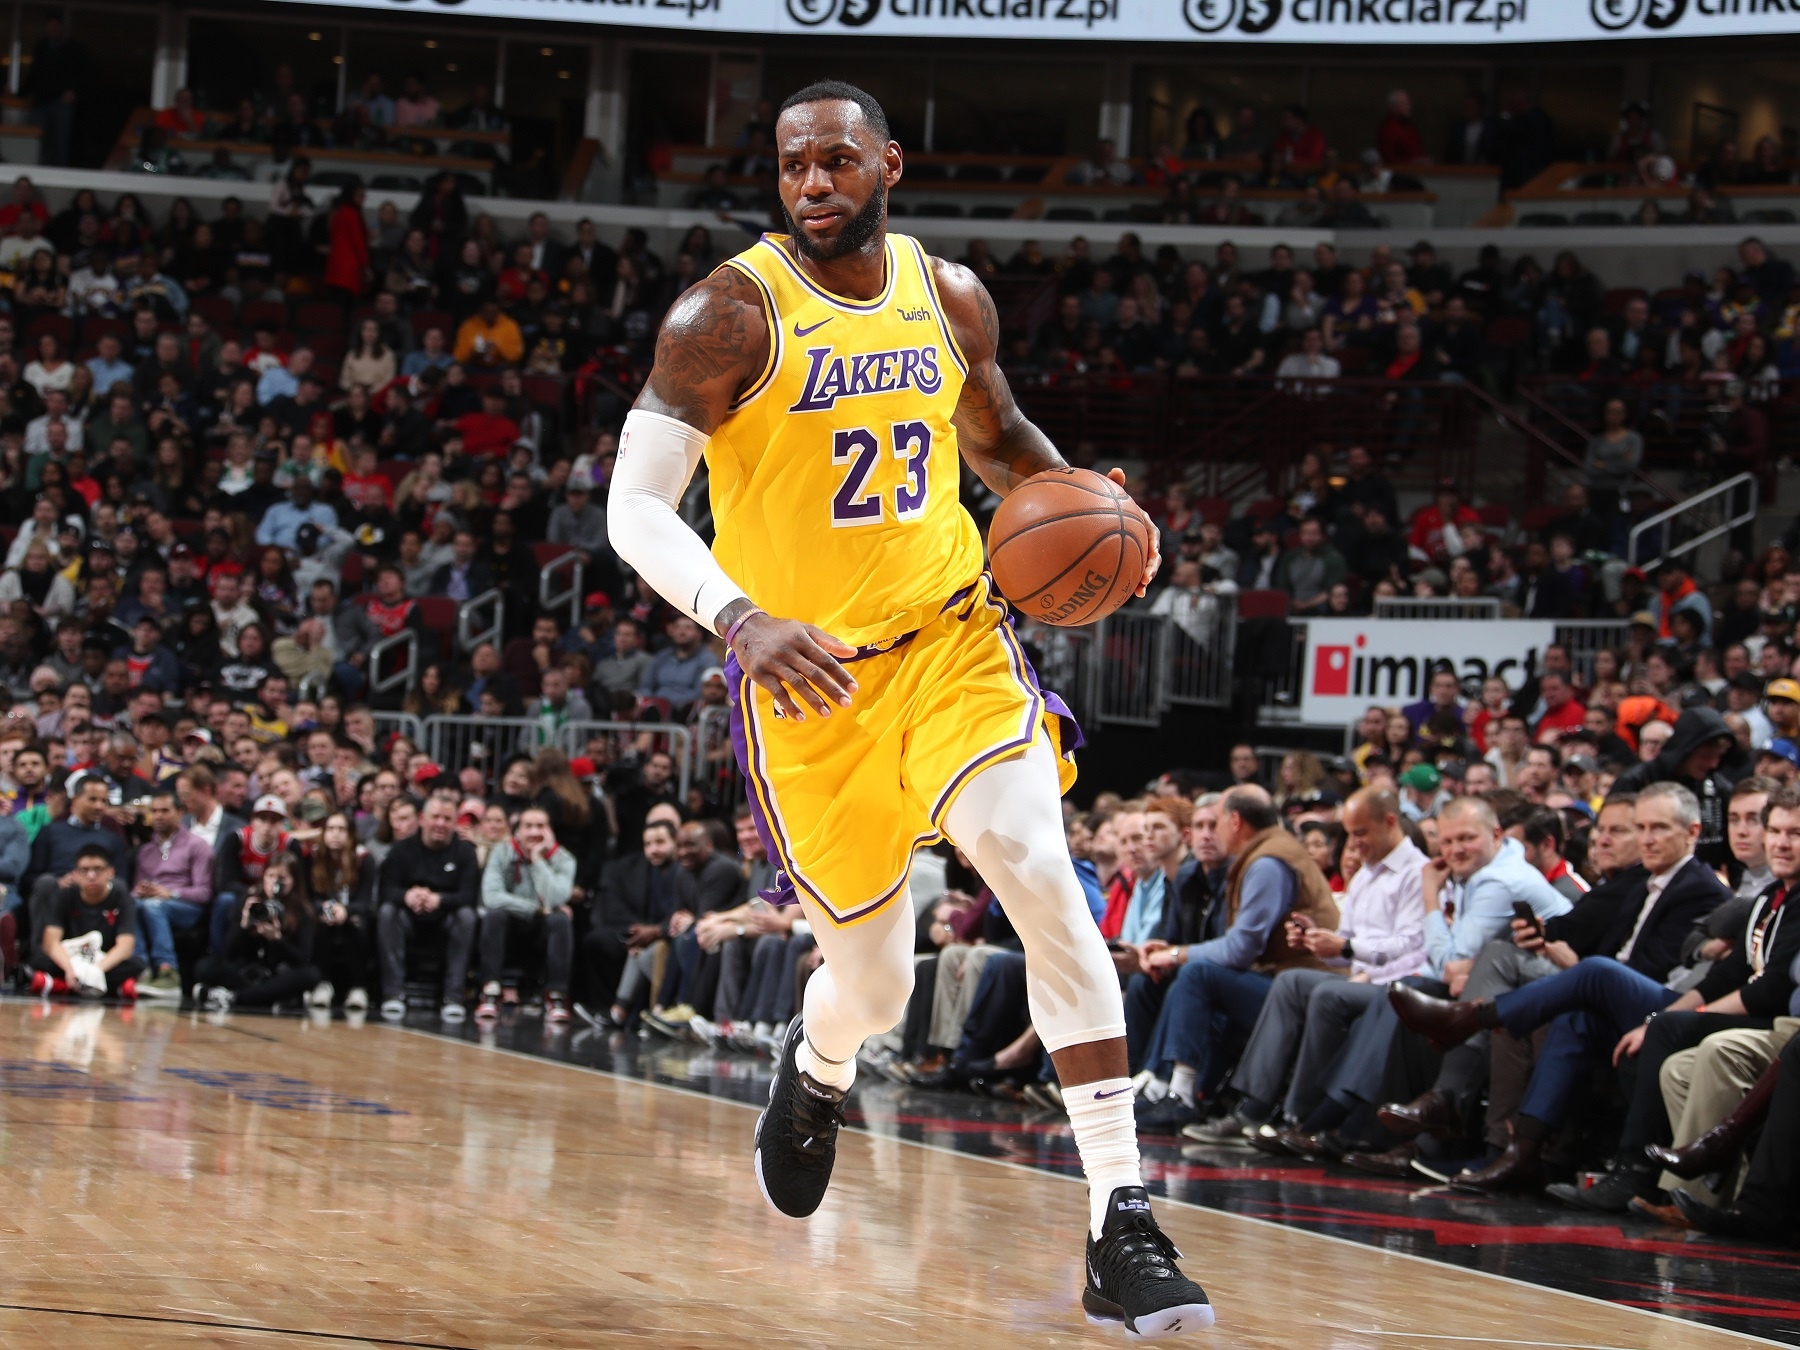 CHICAGO, IL - MARCH 12: LeBron James #23 of the Los Angeles Lakers handles the ball against the Chicago Bulls on March 12, 2019 at the United Center in Chicago, Illinois. Copyright 2019 NBAE (Photo by Nathaniel S. Butler/NBAE via Getty Images)